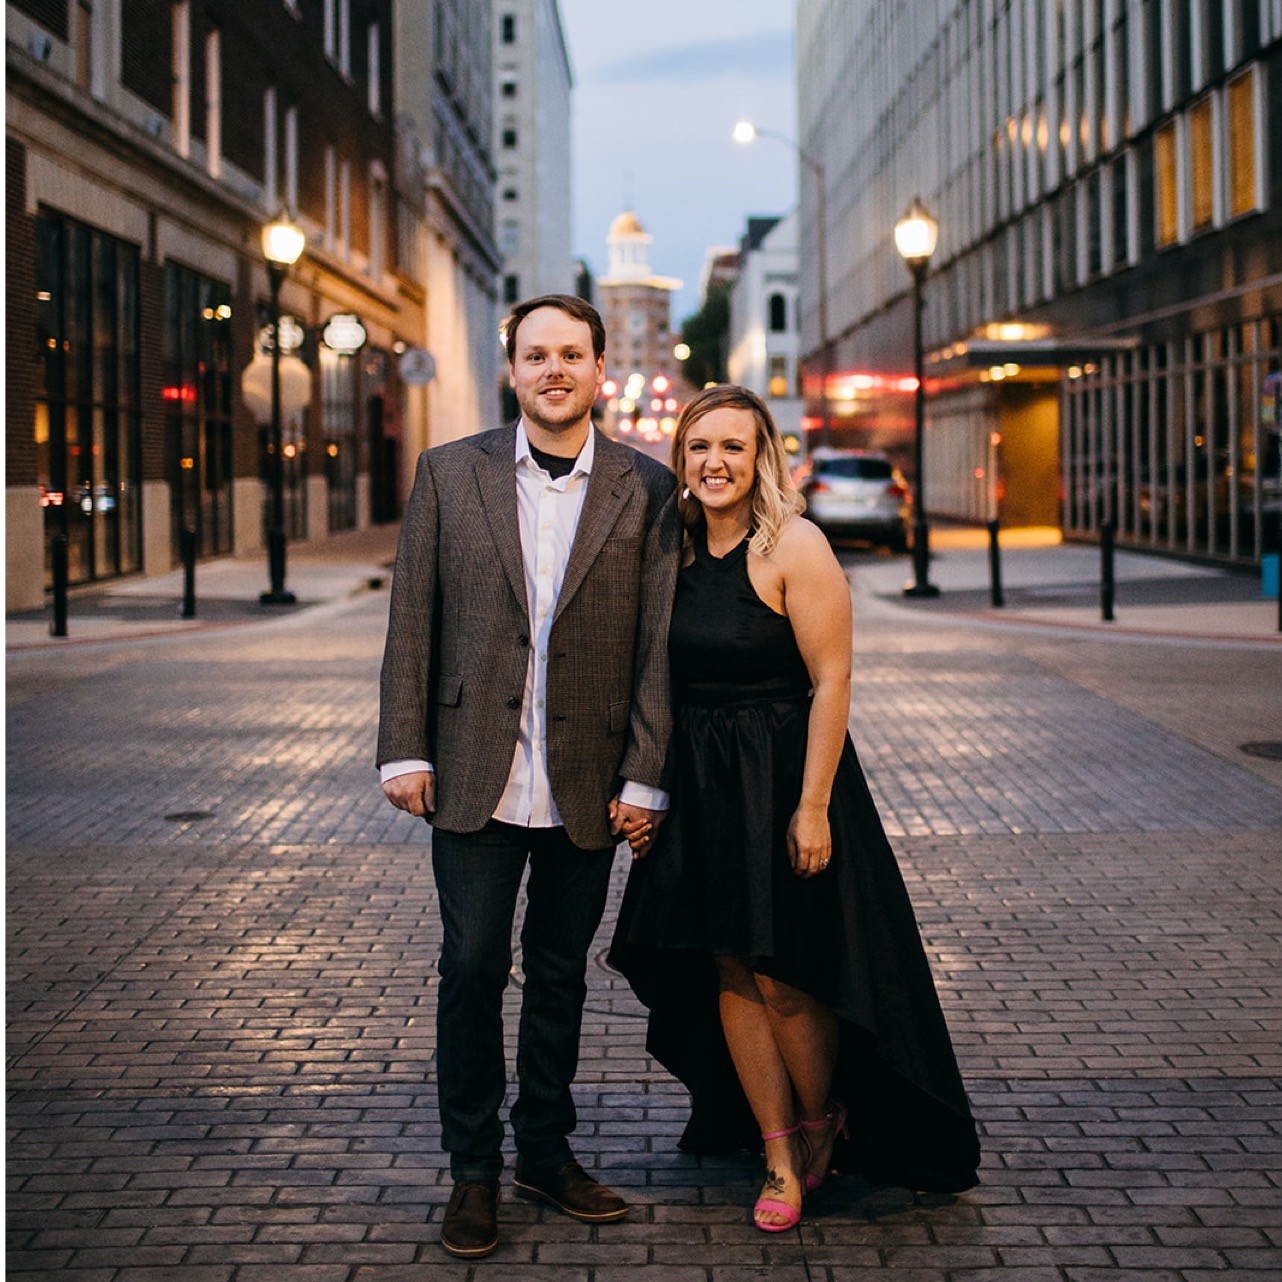 An engaged couple stands together on a street in Chattanooga at dusk. They smile and hold hands for a photo.